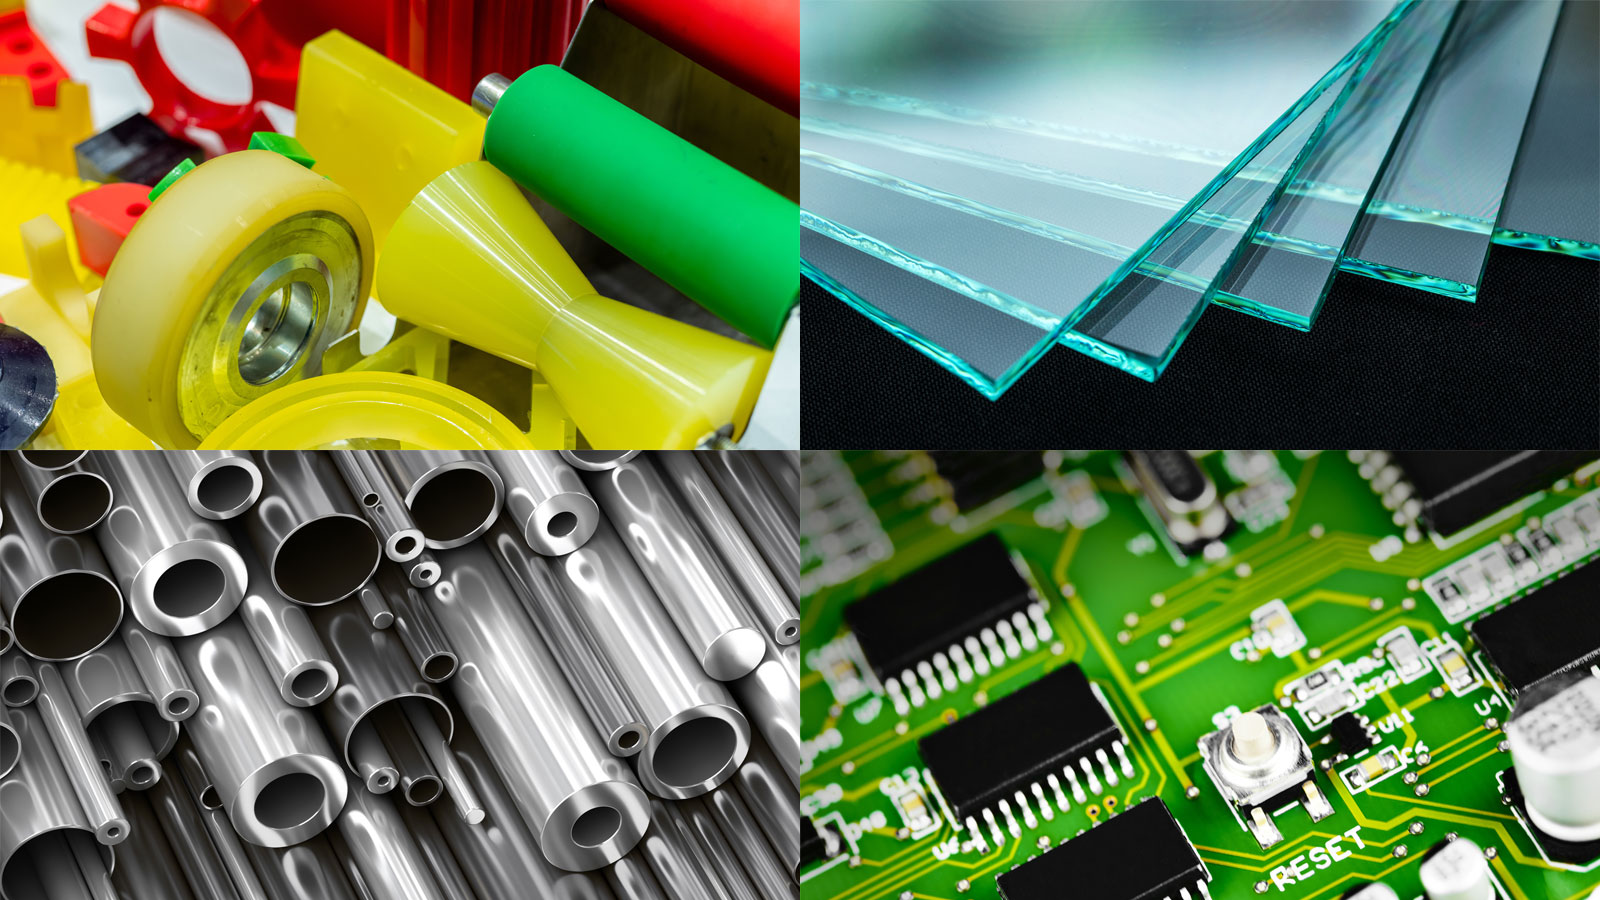 Substrates suitable for surface modification - plastic, metal, glass, and circuit boards